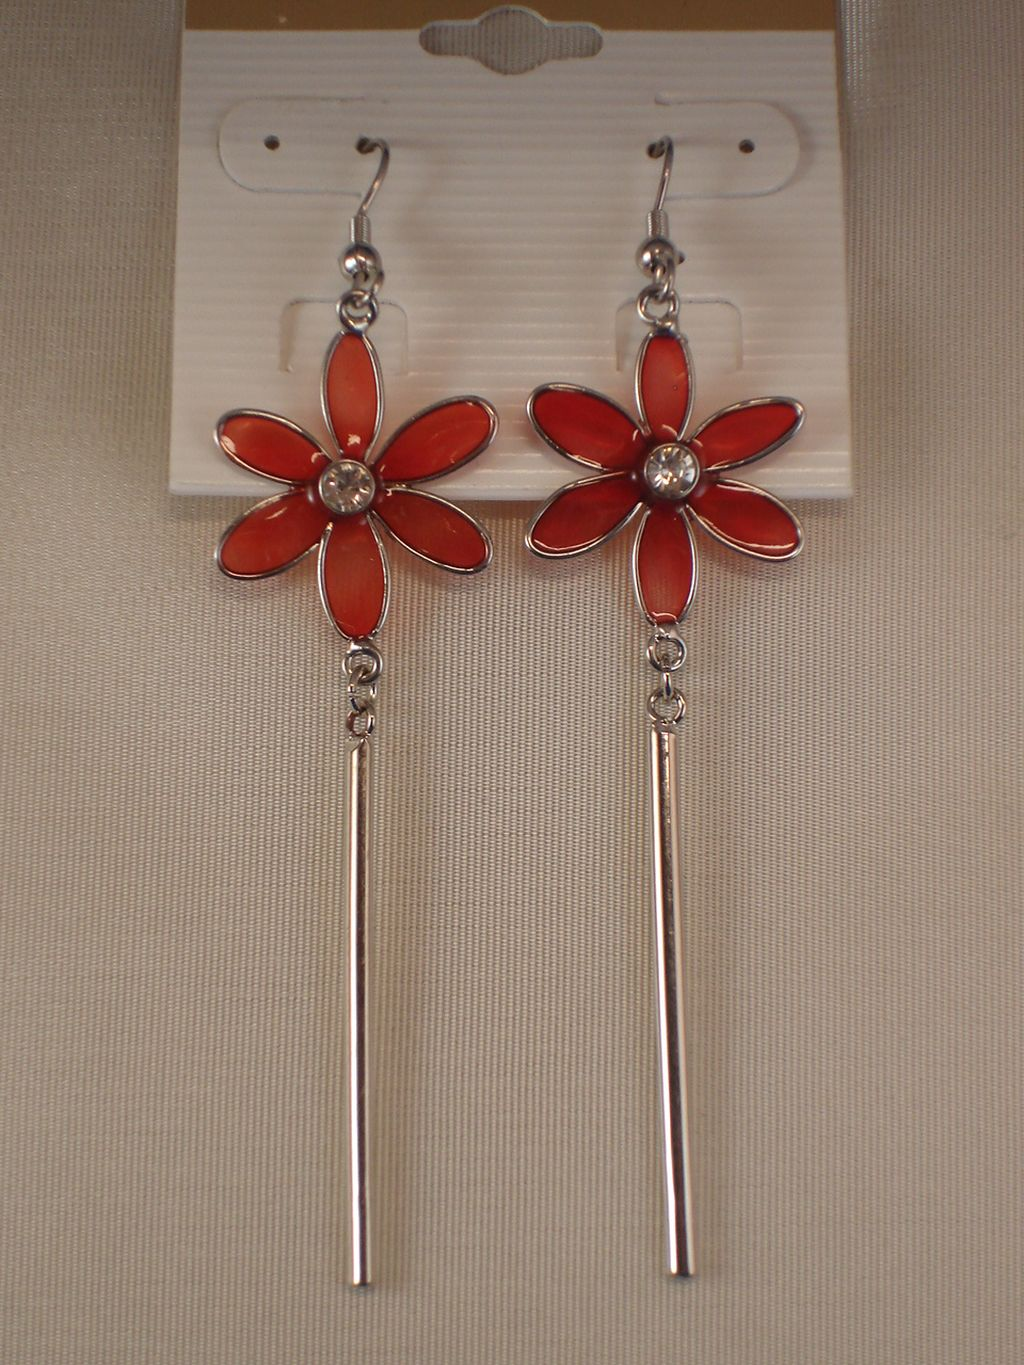 Red Flower Dangling Earrings, CZ Stones, Stained Glass, Silver Tone Anti-allergic Metal